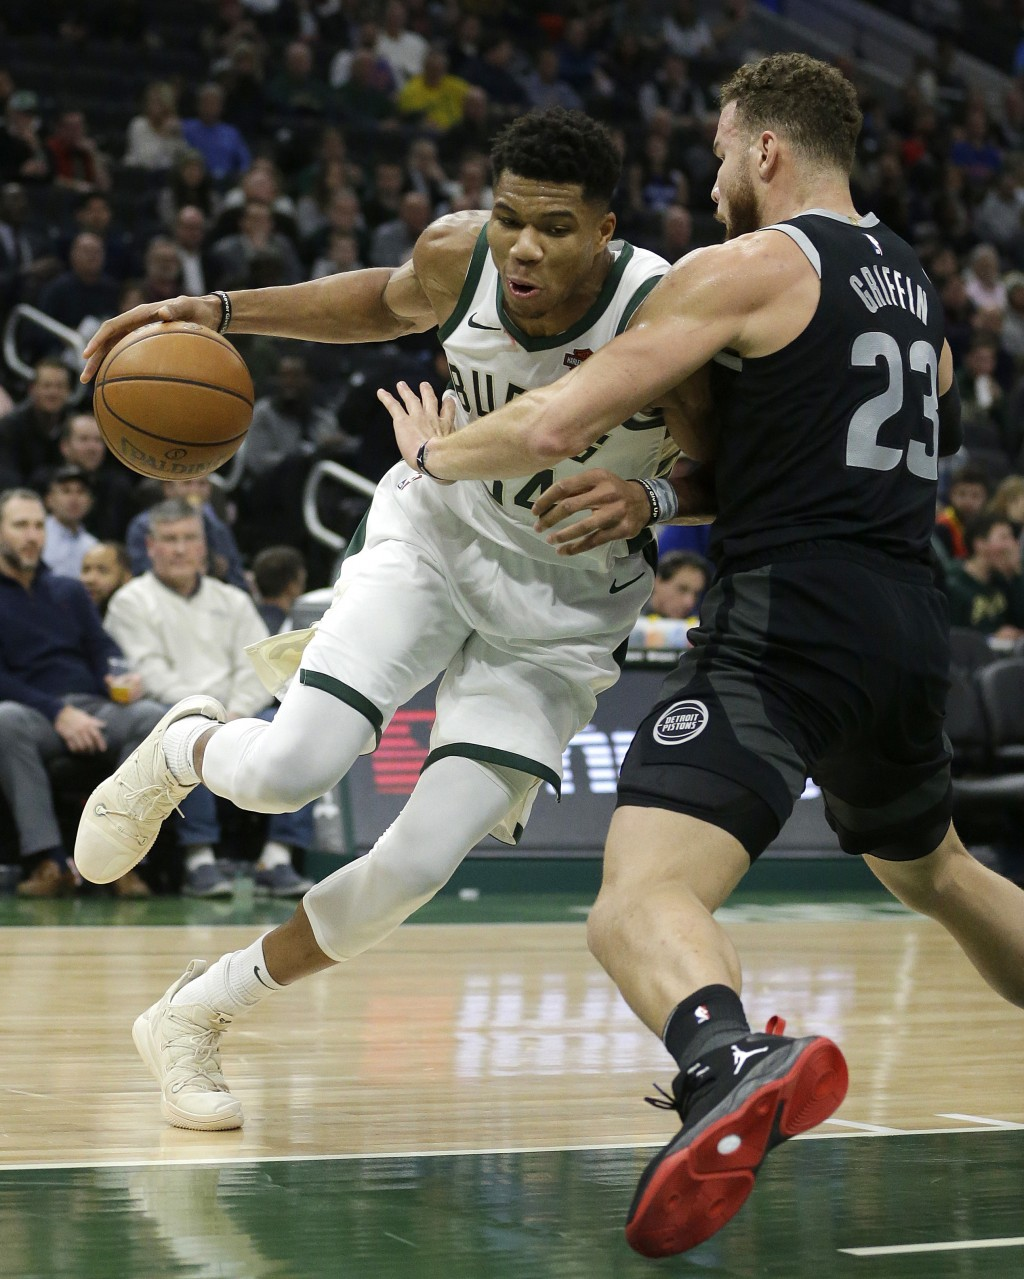 Milwaukee Bucks' Giannis Antetokounmpo, left, drives against Detroit Pistons' Blake Griffin during the second half of an NBA basketball game Wednesday